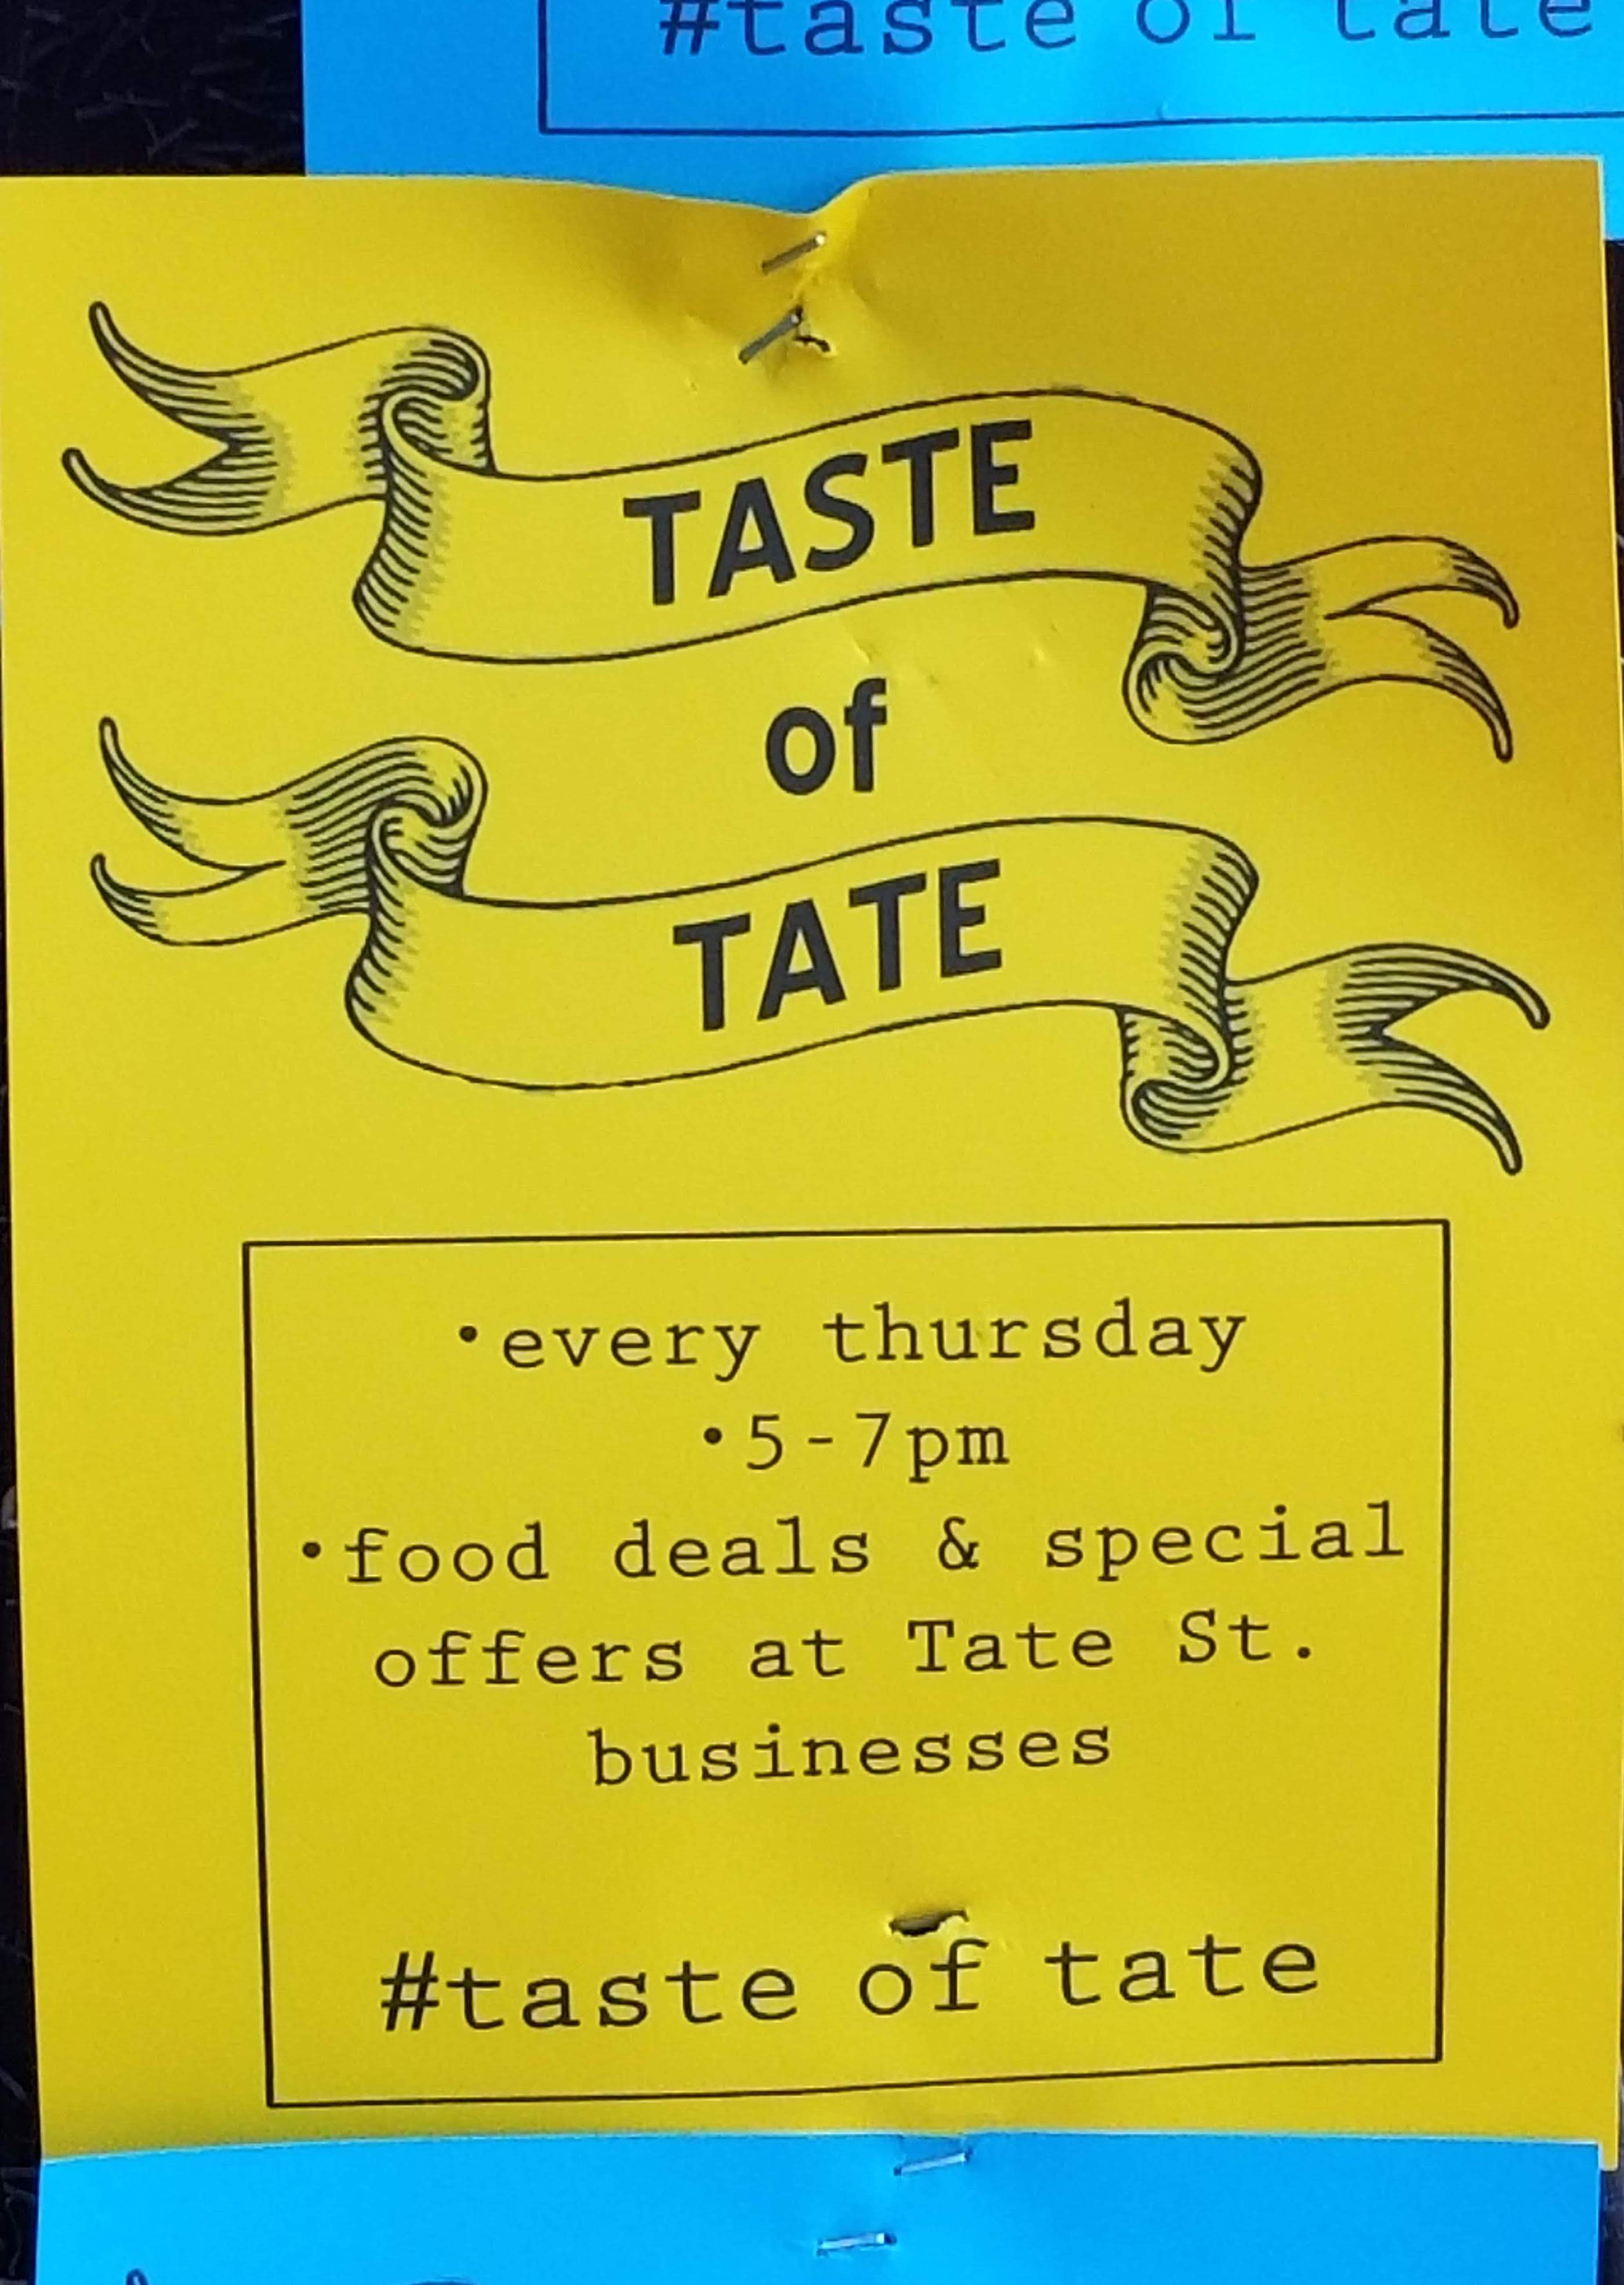 Flyer for Taste of Tate